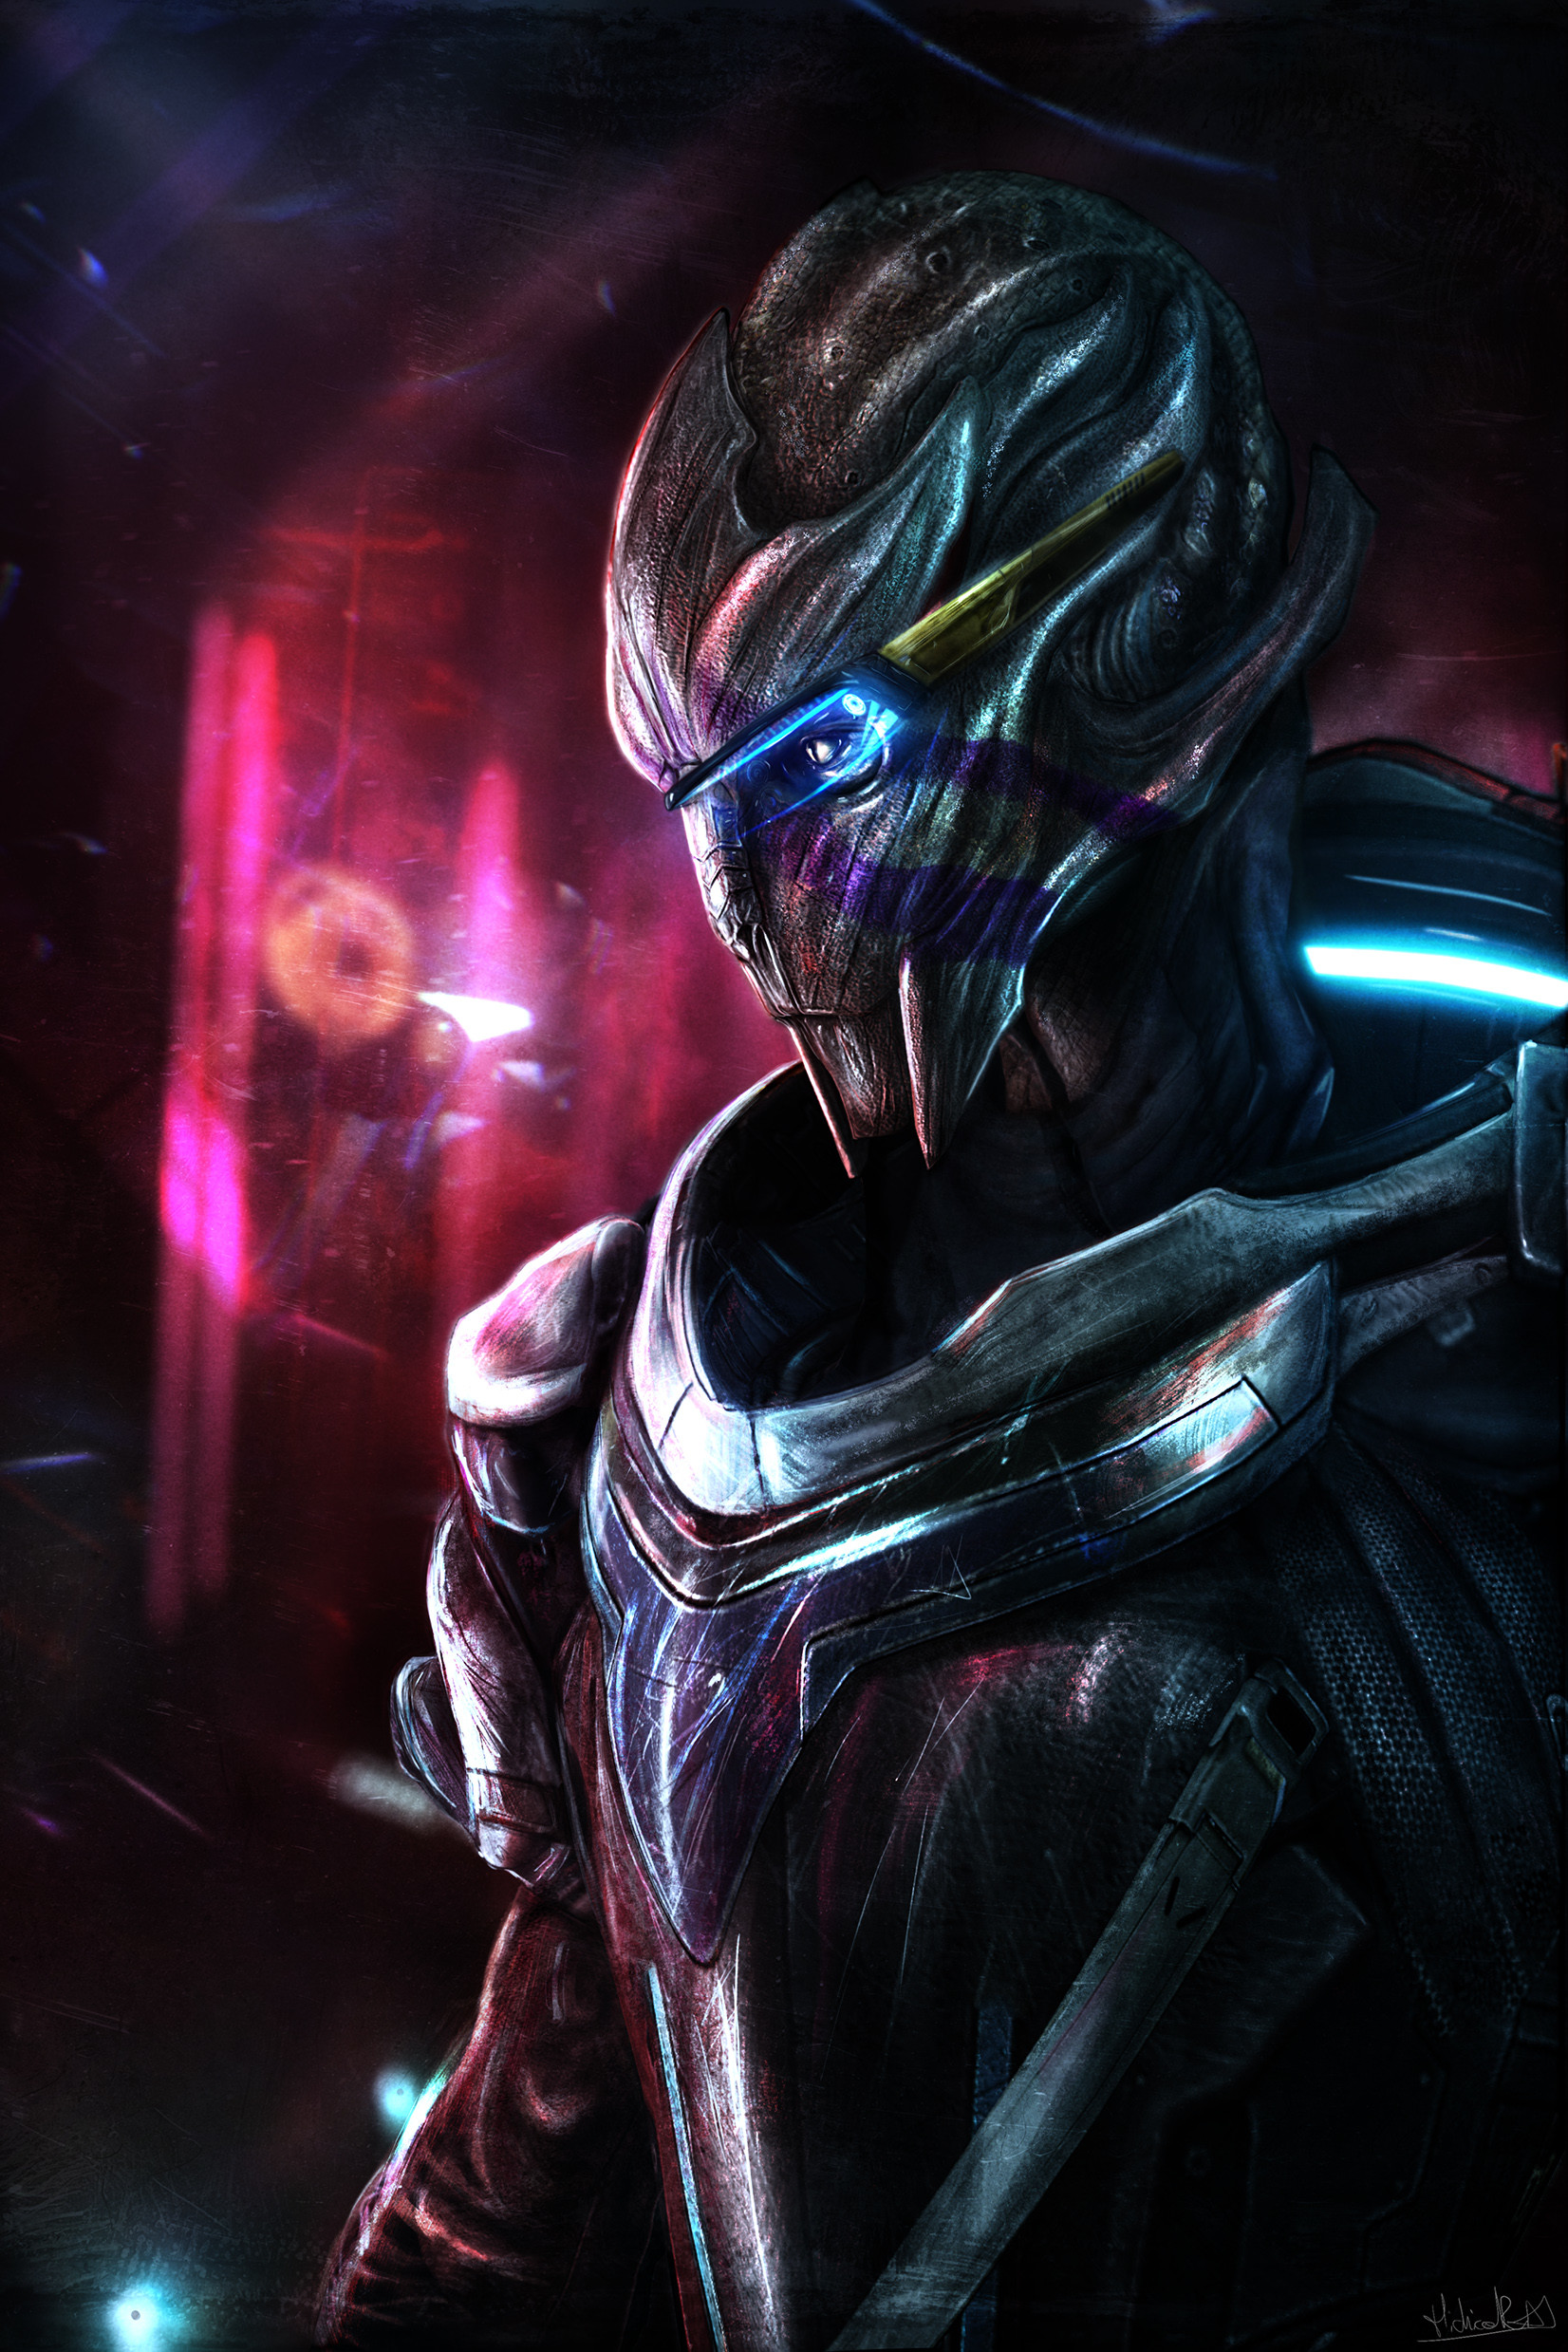 Vetra Artwork From Mass Effect Andromeda Hidrico Rubens Nix Firm